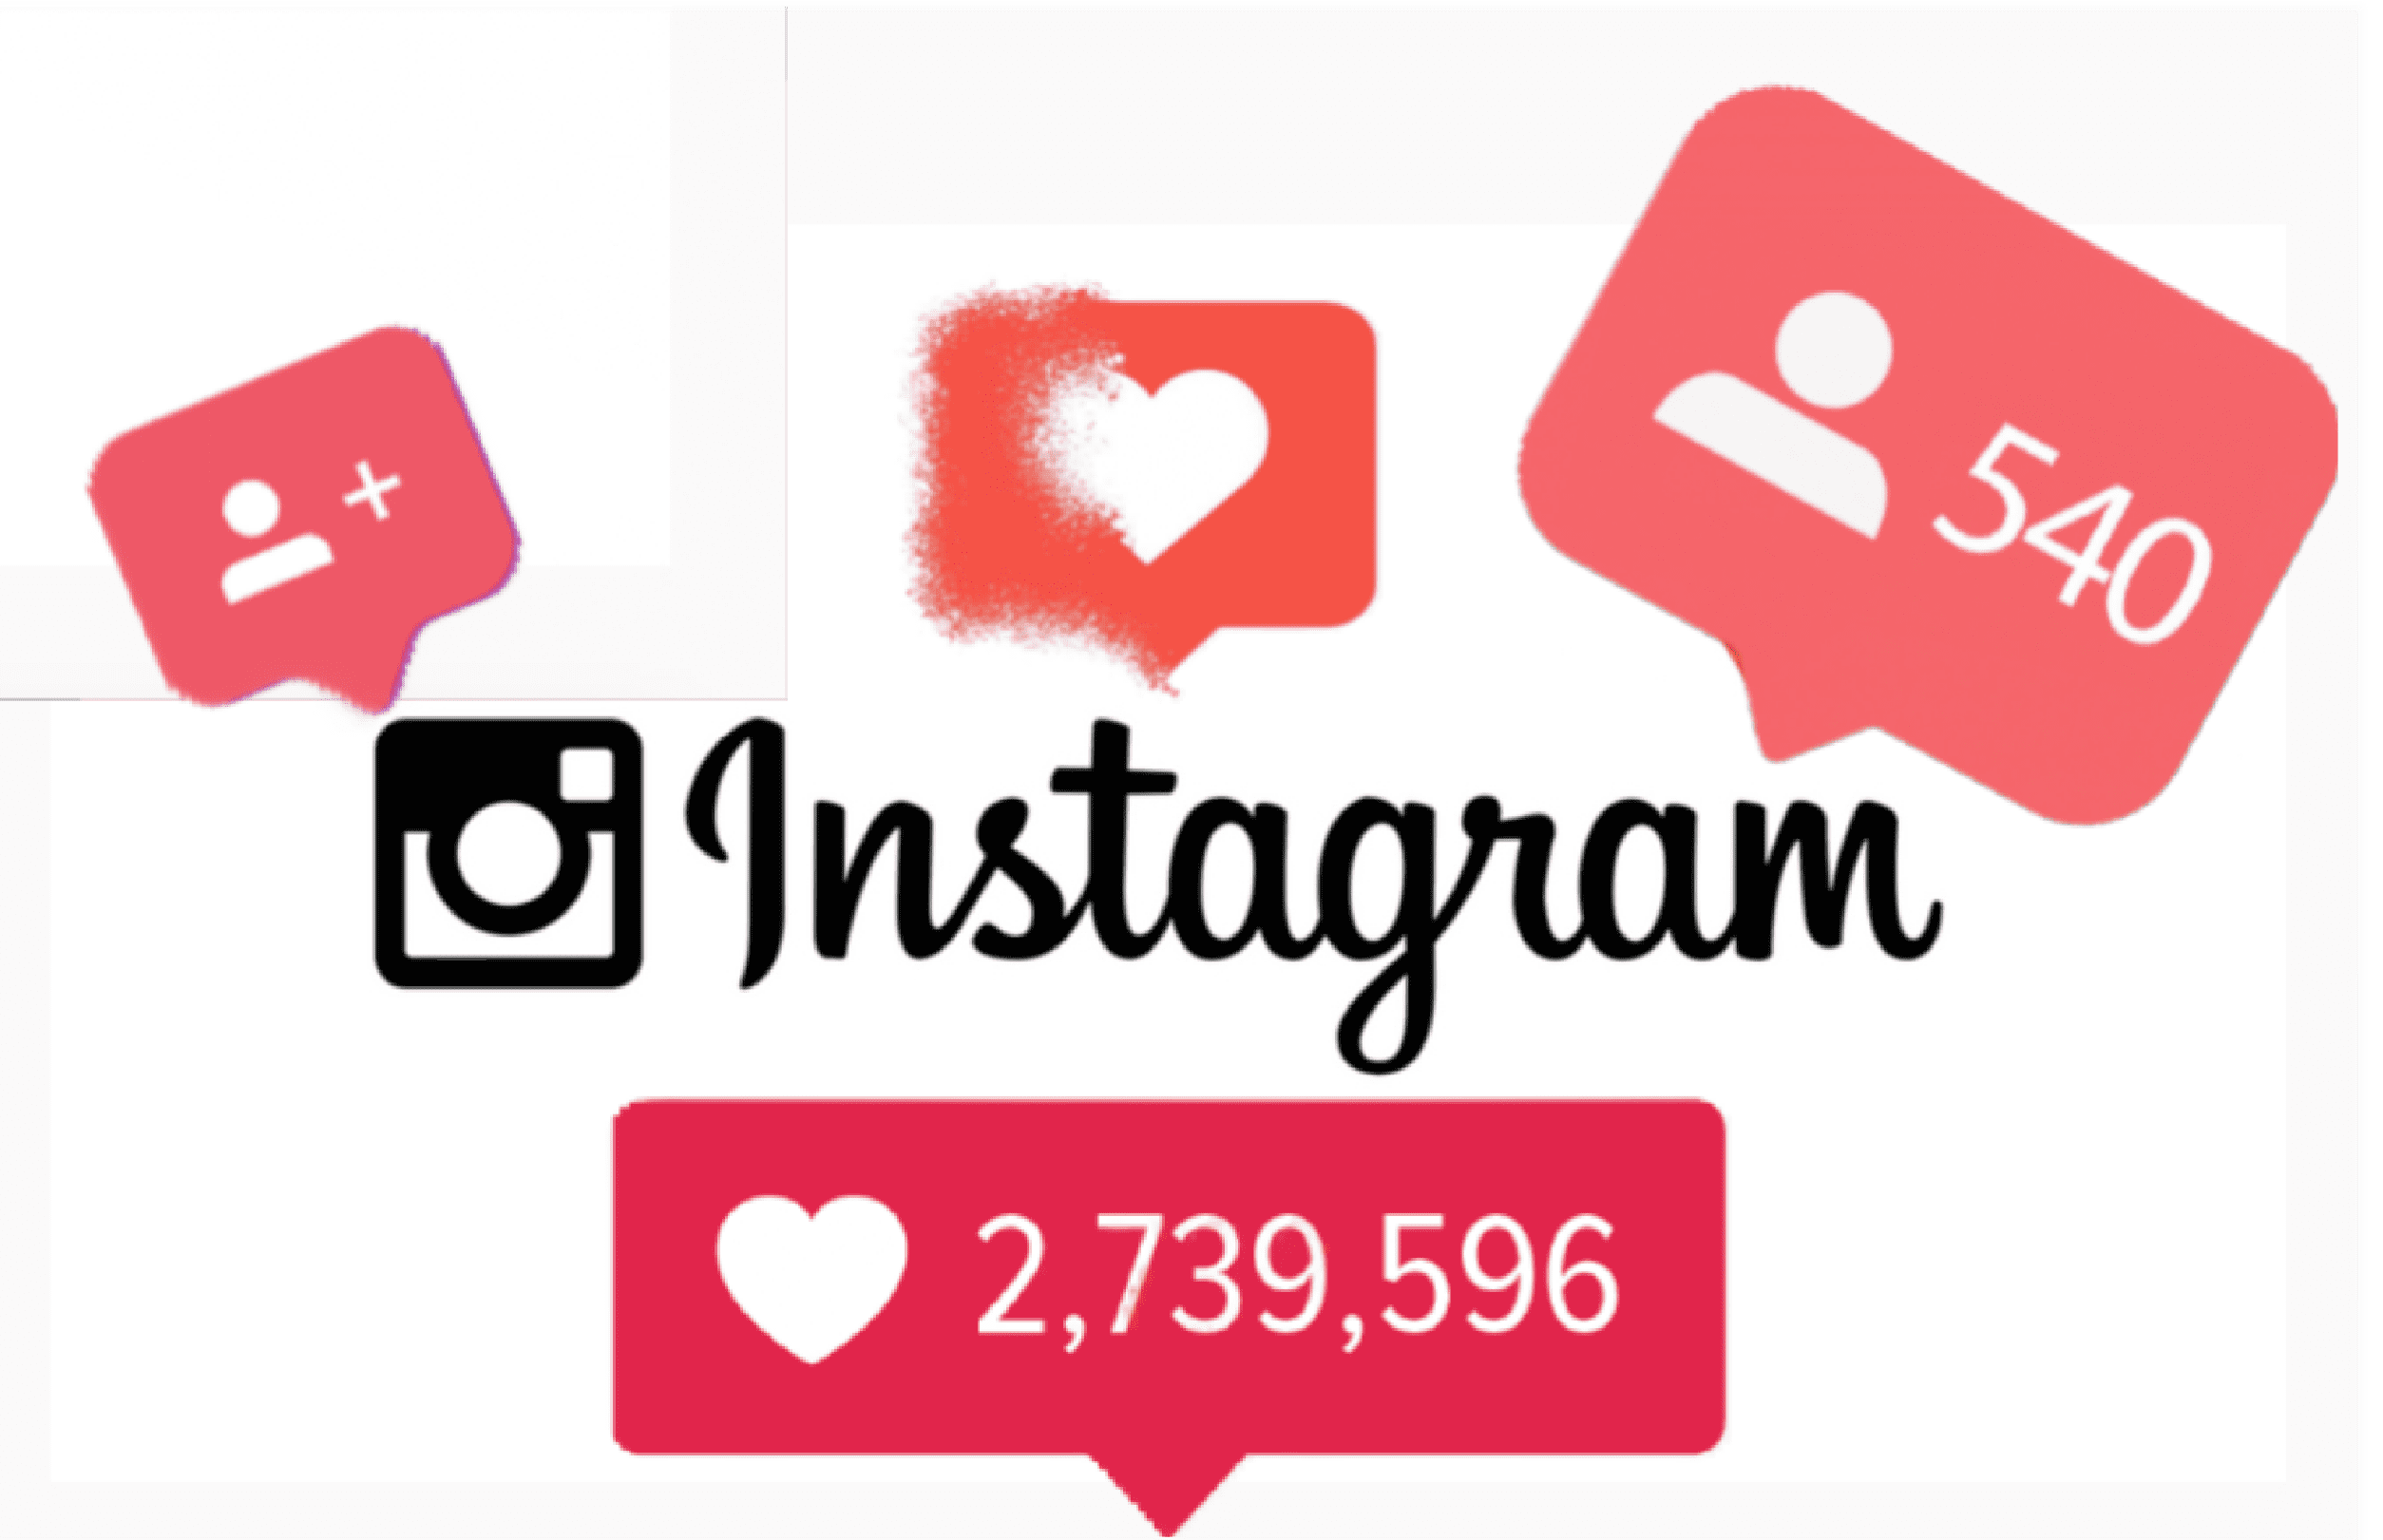 On the   famous website, I managed to buy Instagram followers (comprar seguidores de Instagram) In a legal and real way.